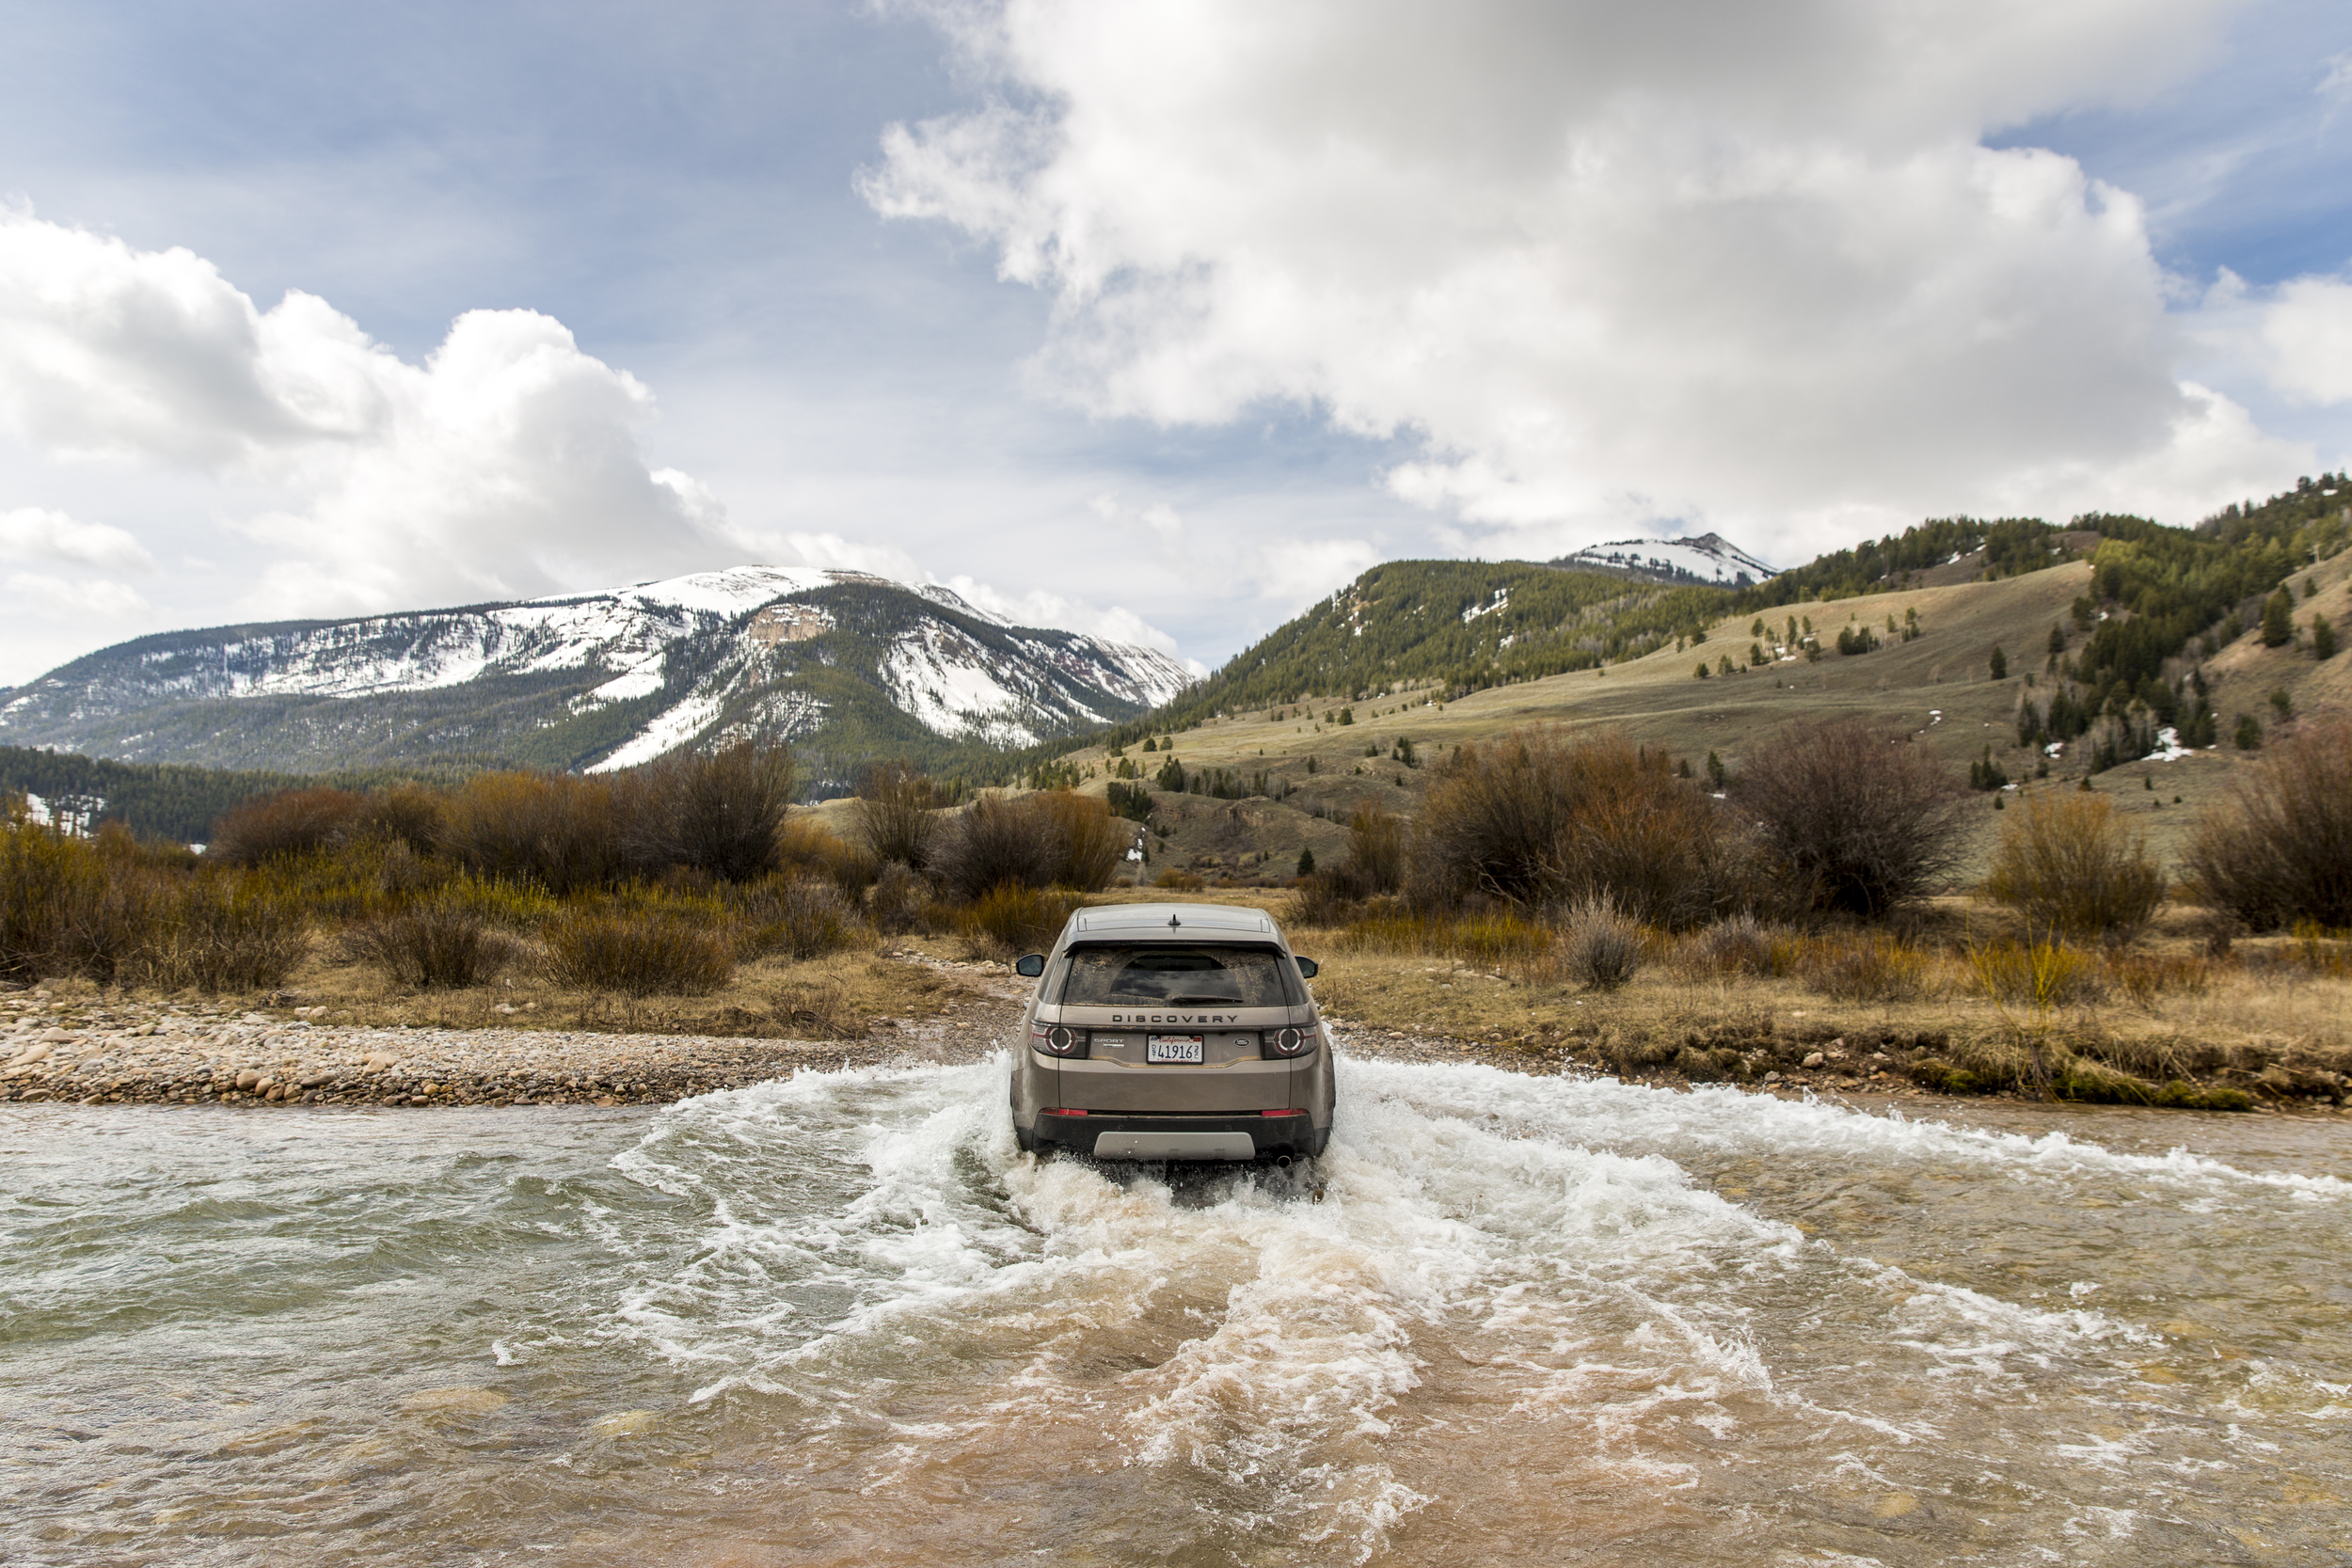 Our Land Rover crossing a river in Wyoming